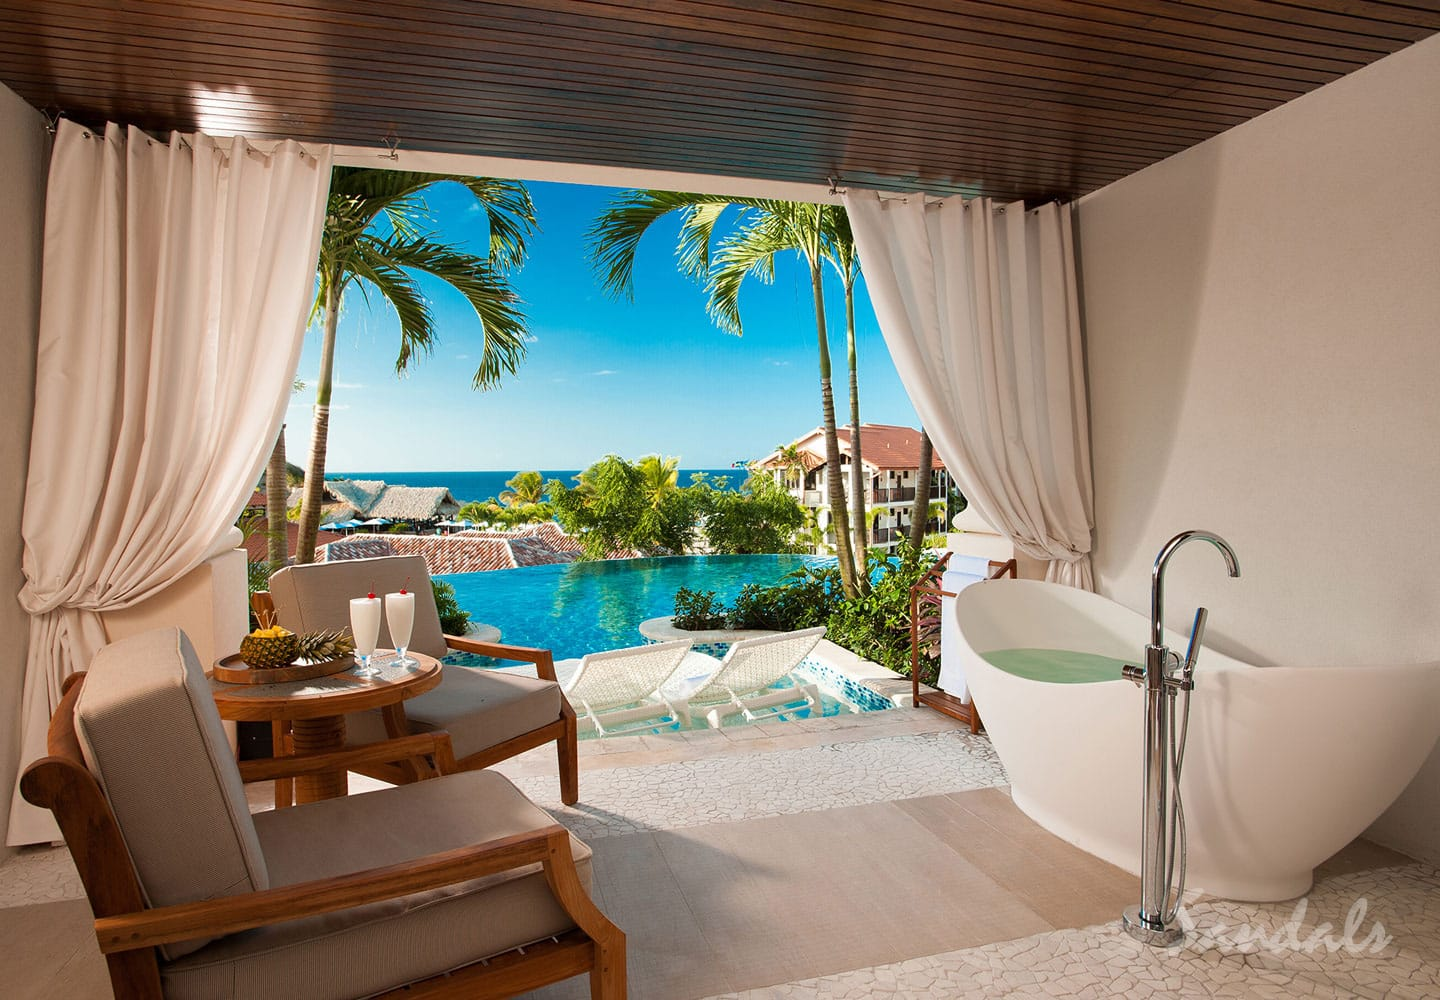 luxurious resort room with champagne on the table, deluxe bathtub and private plunge pool at Sandals LaSource Grenada, luxury resort for adults only, Southern Travel Agency Augusta, GA